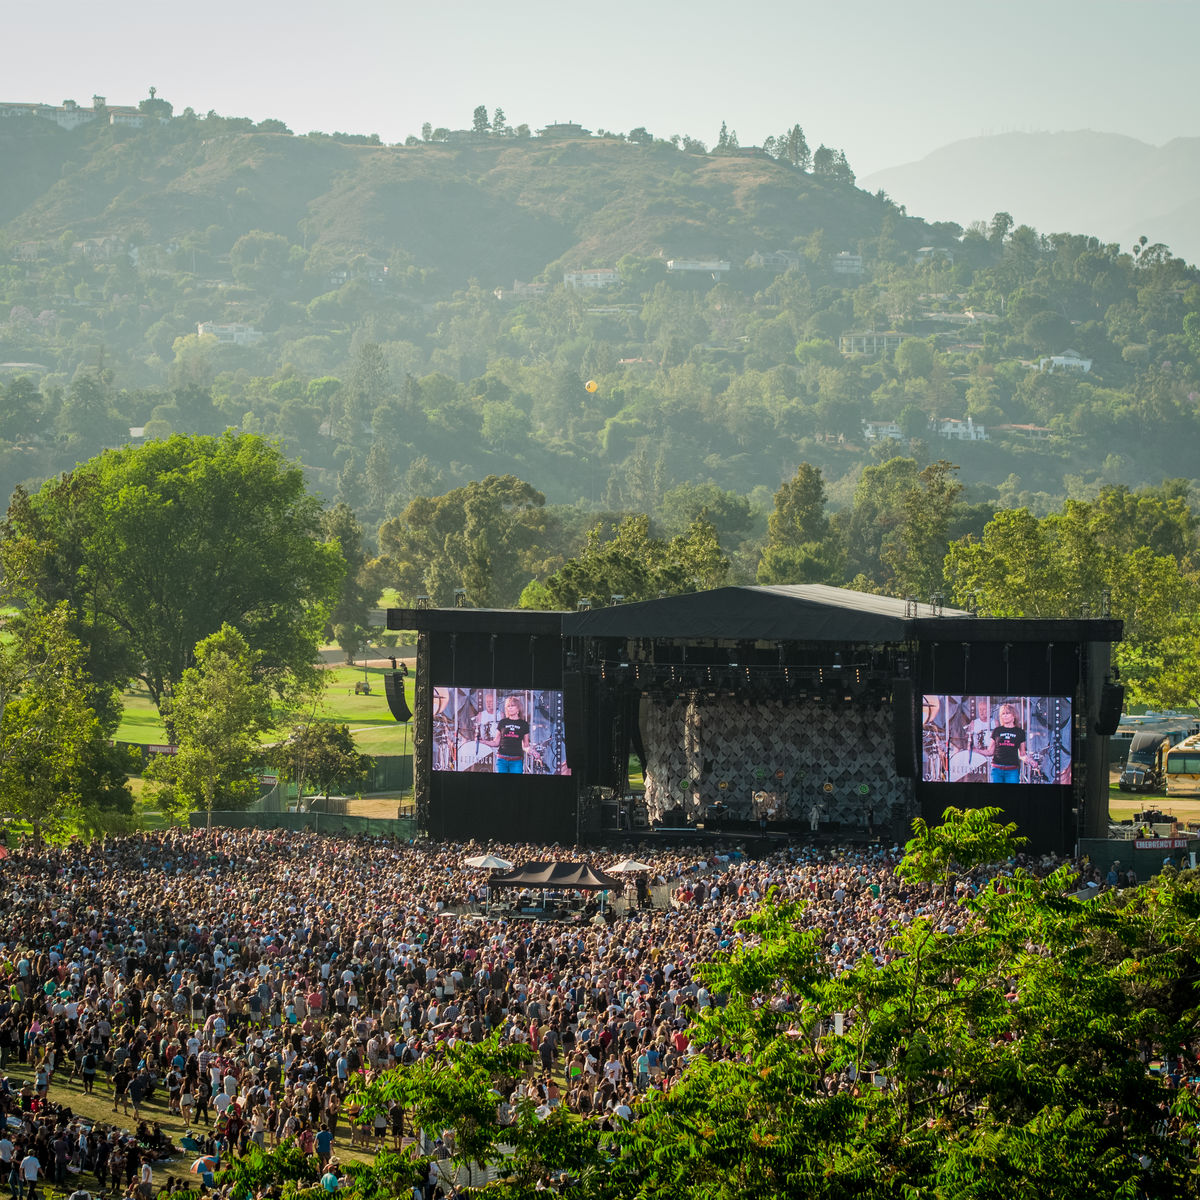 Image of stage and crowd from a distance with trees and hills in background